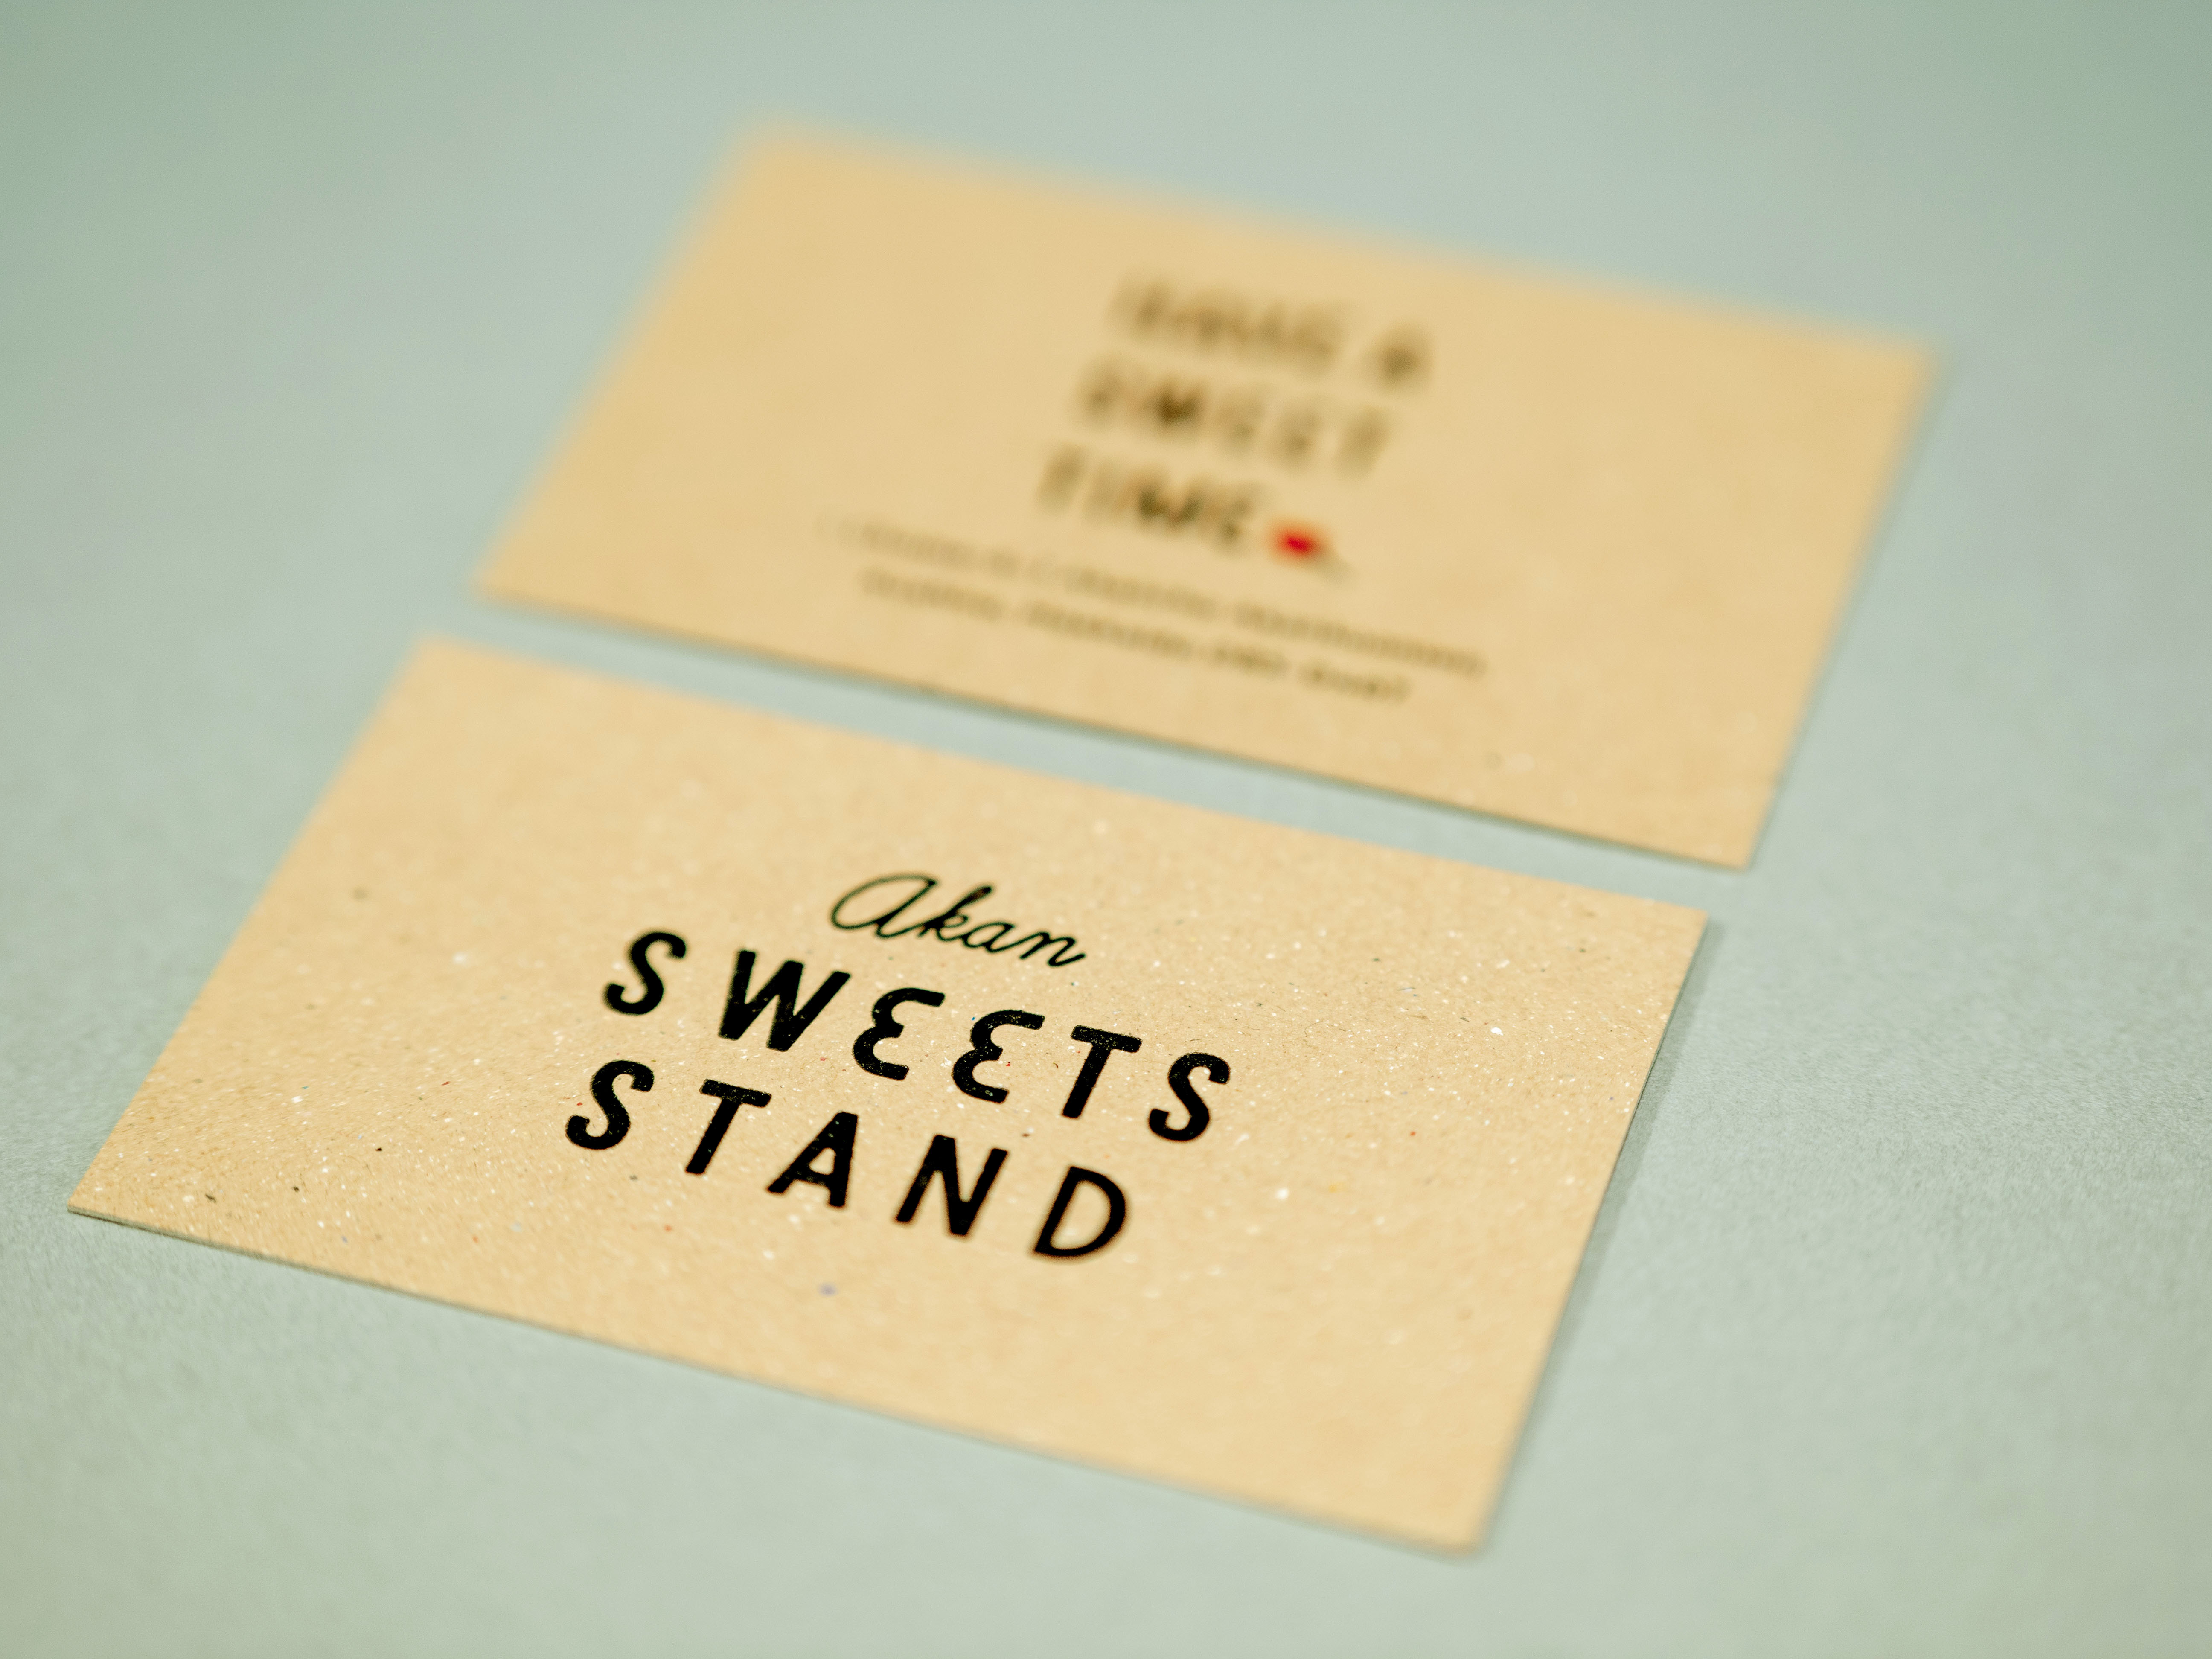 <span>Shop card</span><br>鶴雅グループ<br>阿寒 Sweets Stand